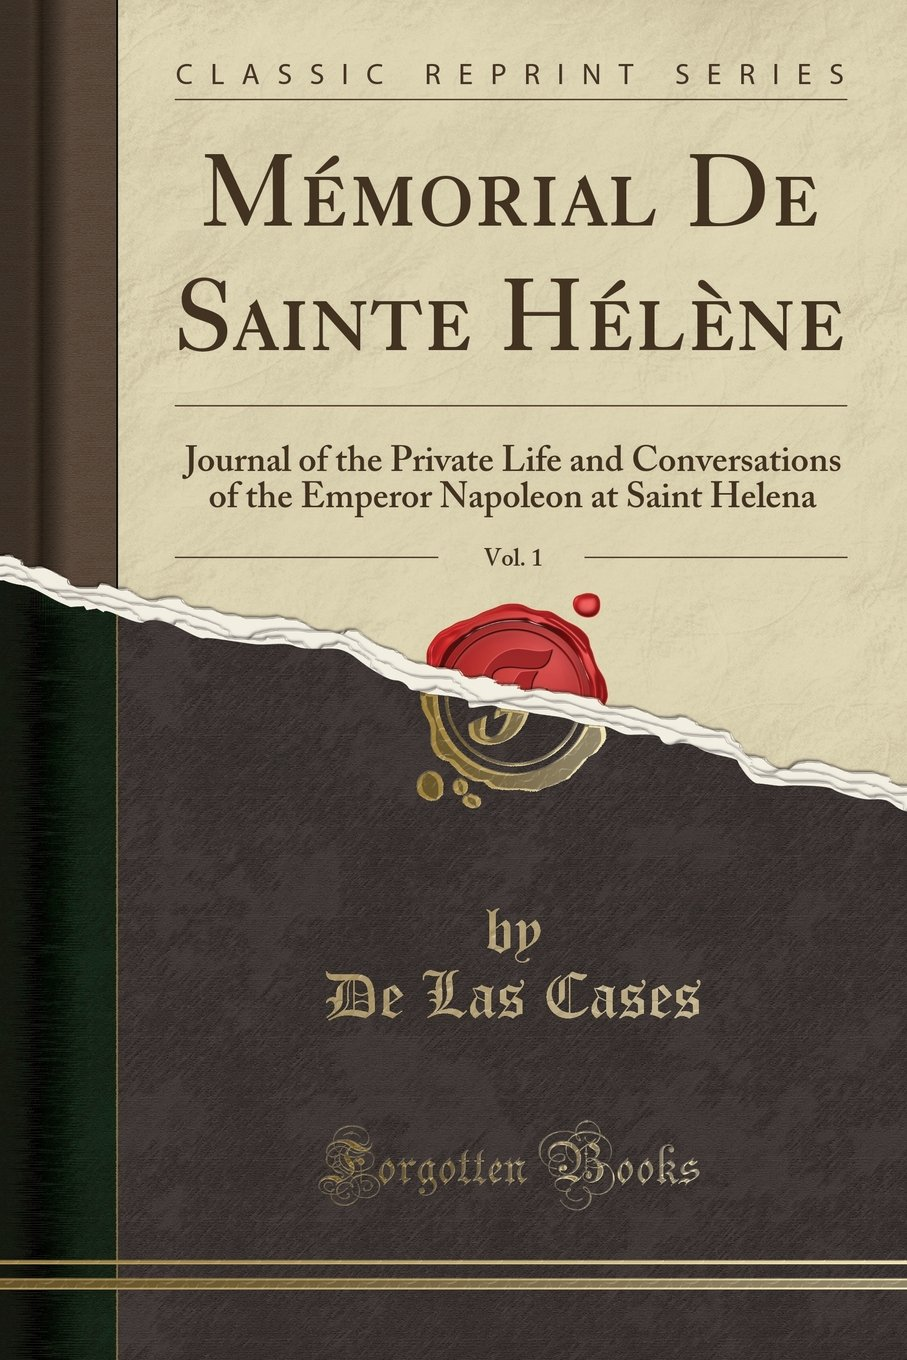 Read Online Mémorial De Sainte Hélène, Vol. 1: Journal of the Private Life and Conversations of the Emperor Napoleon at Saint Helena (Classic Reprint) ebook